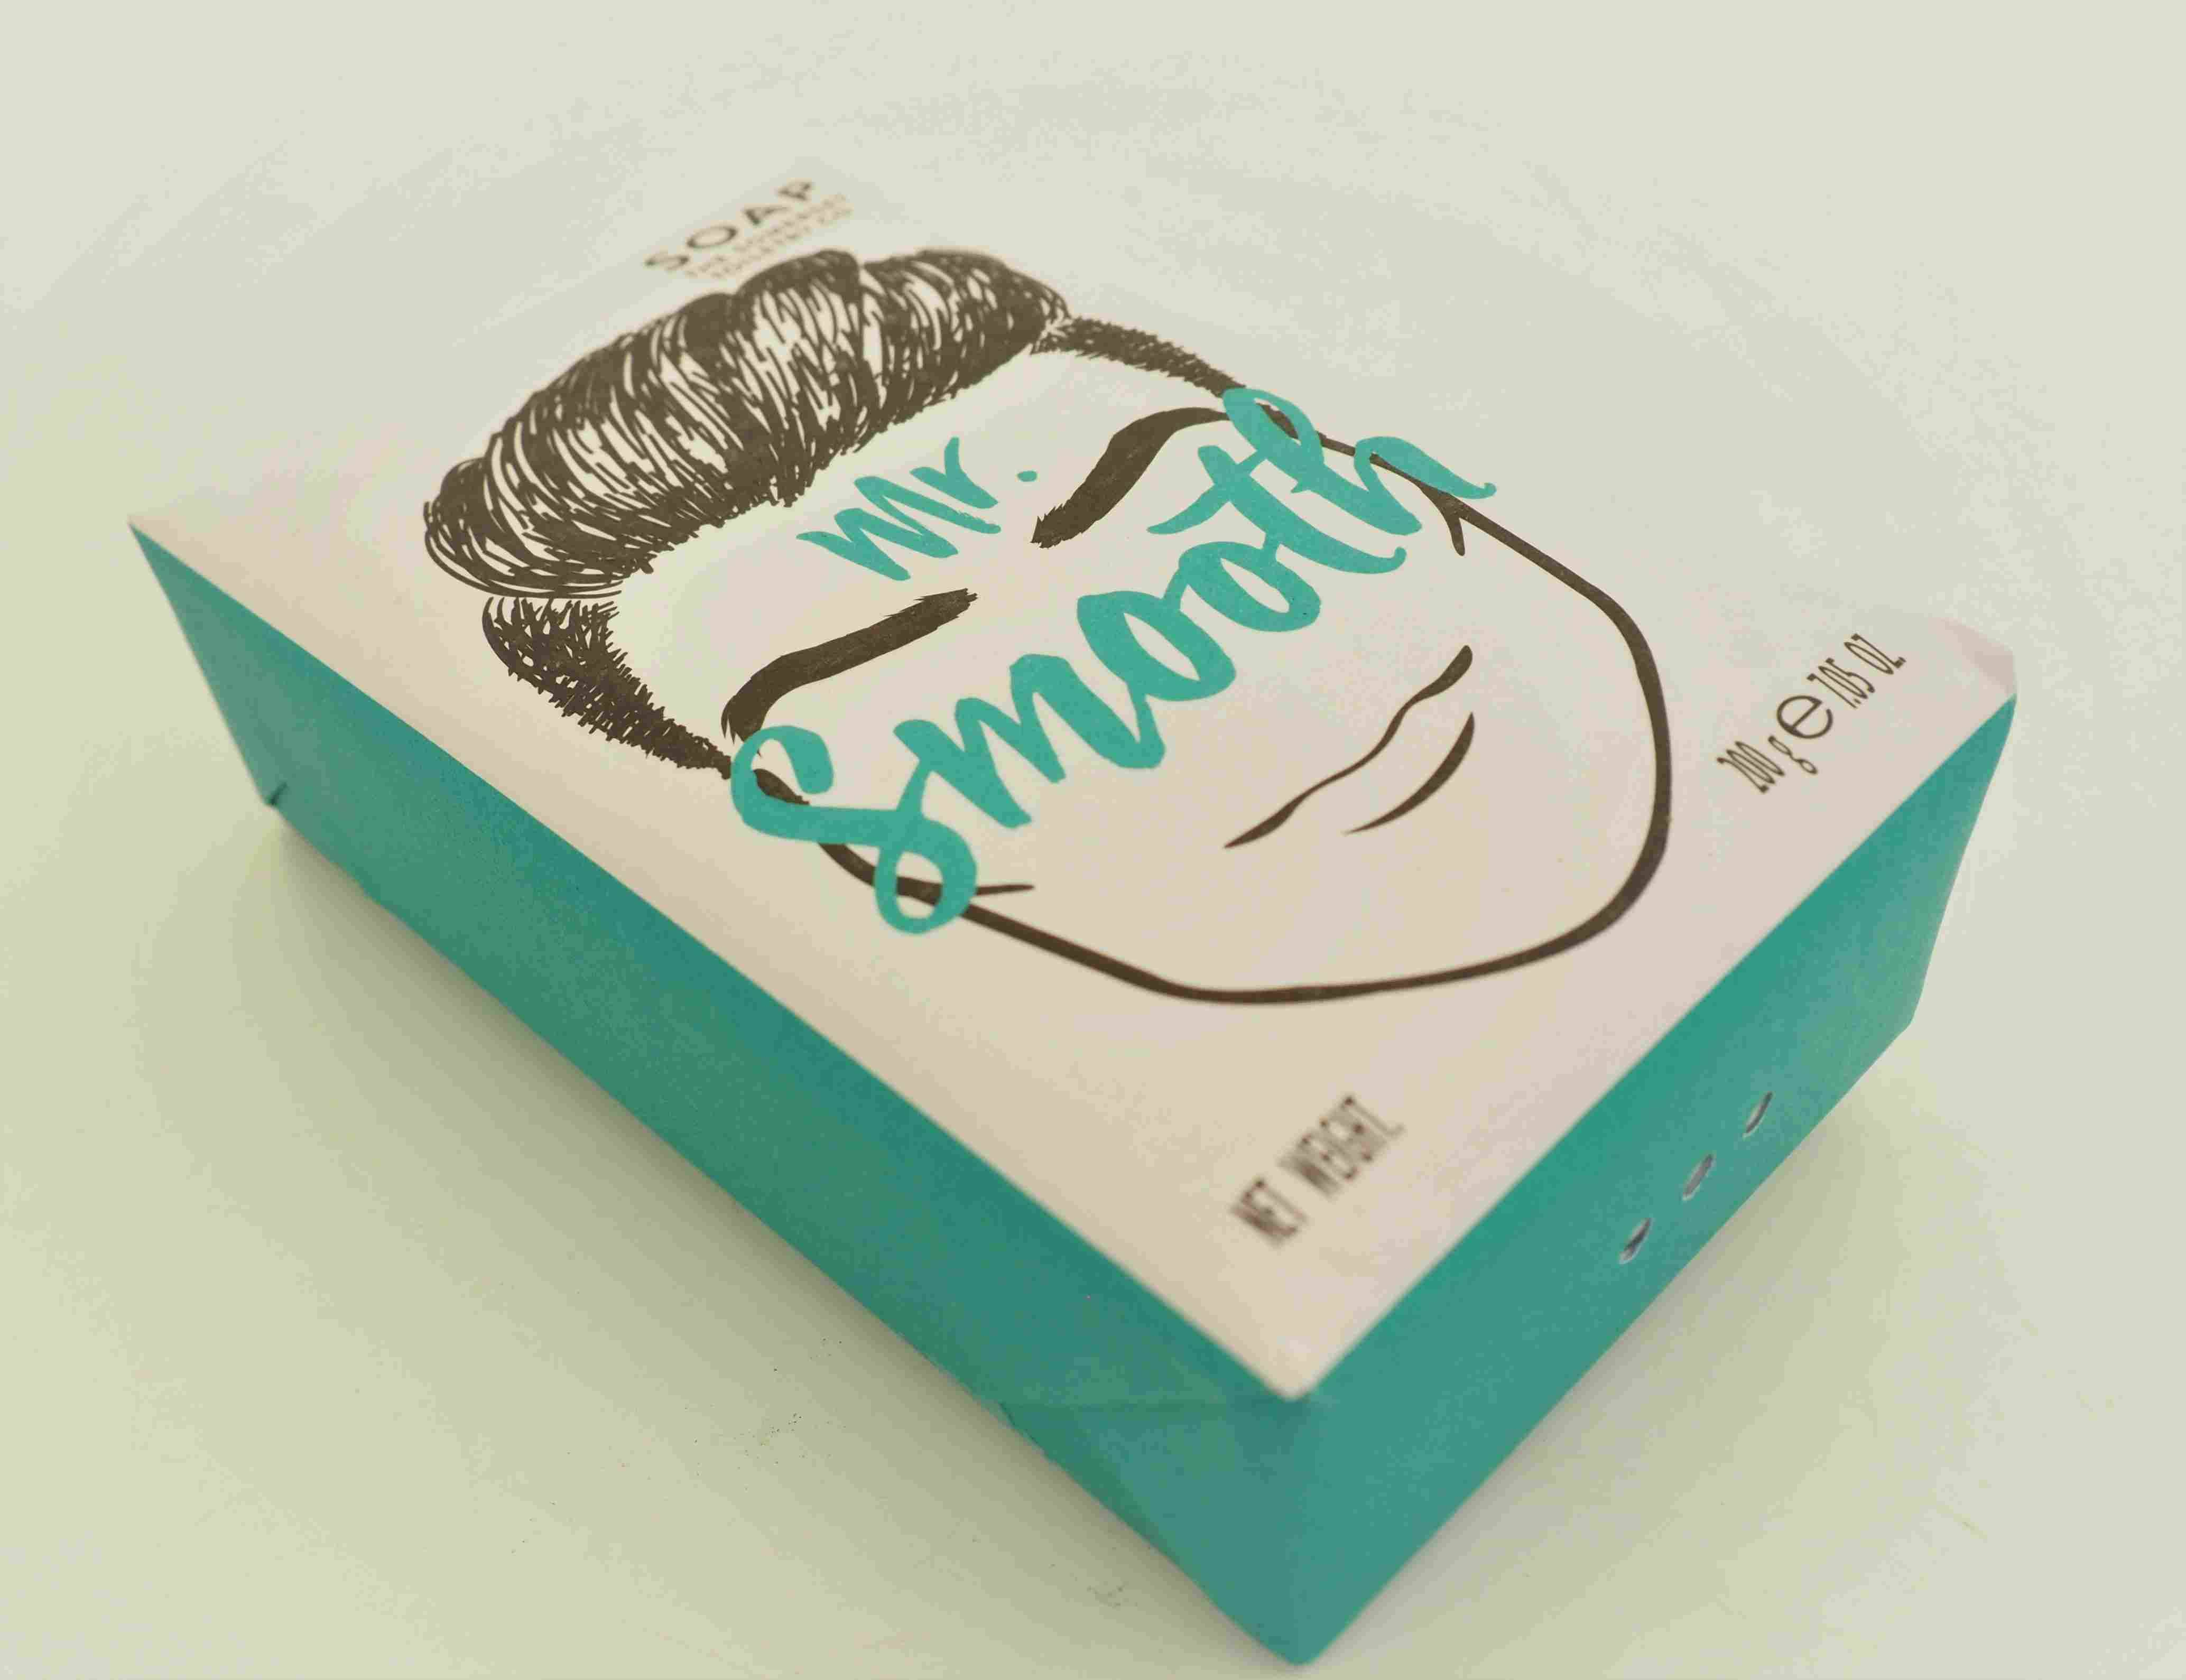 Mr Smooth Soap